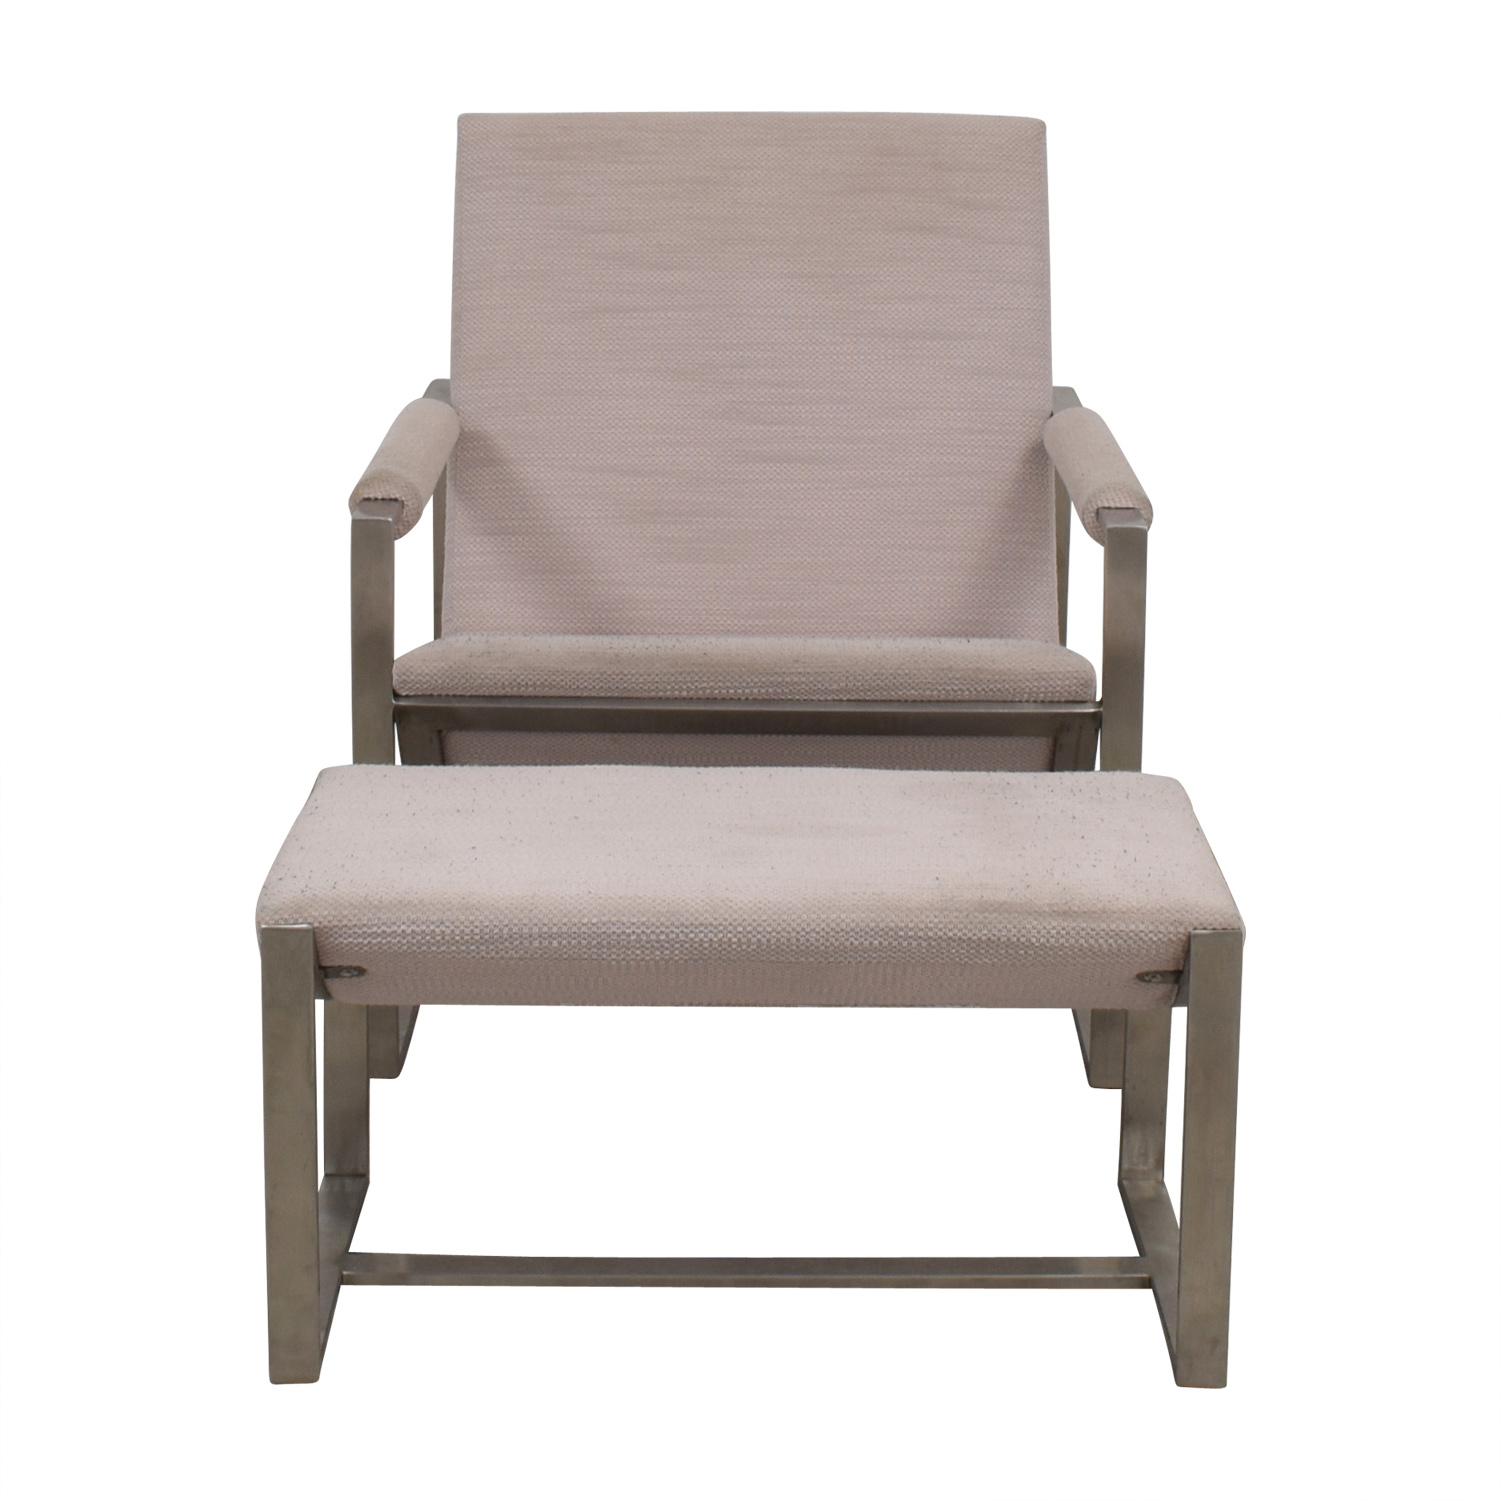 shop West Elm West Elm Cream Chair and Foot Stool online